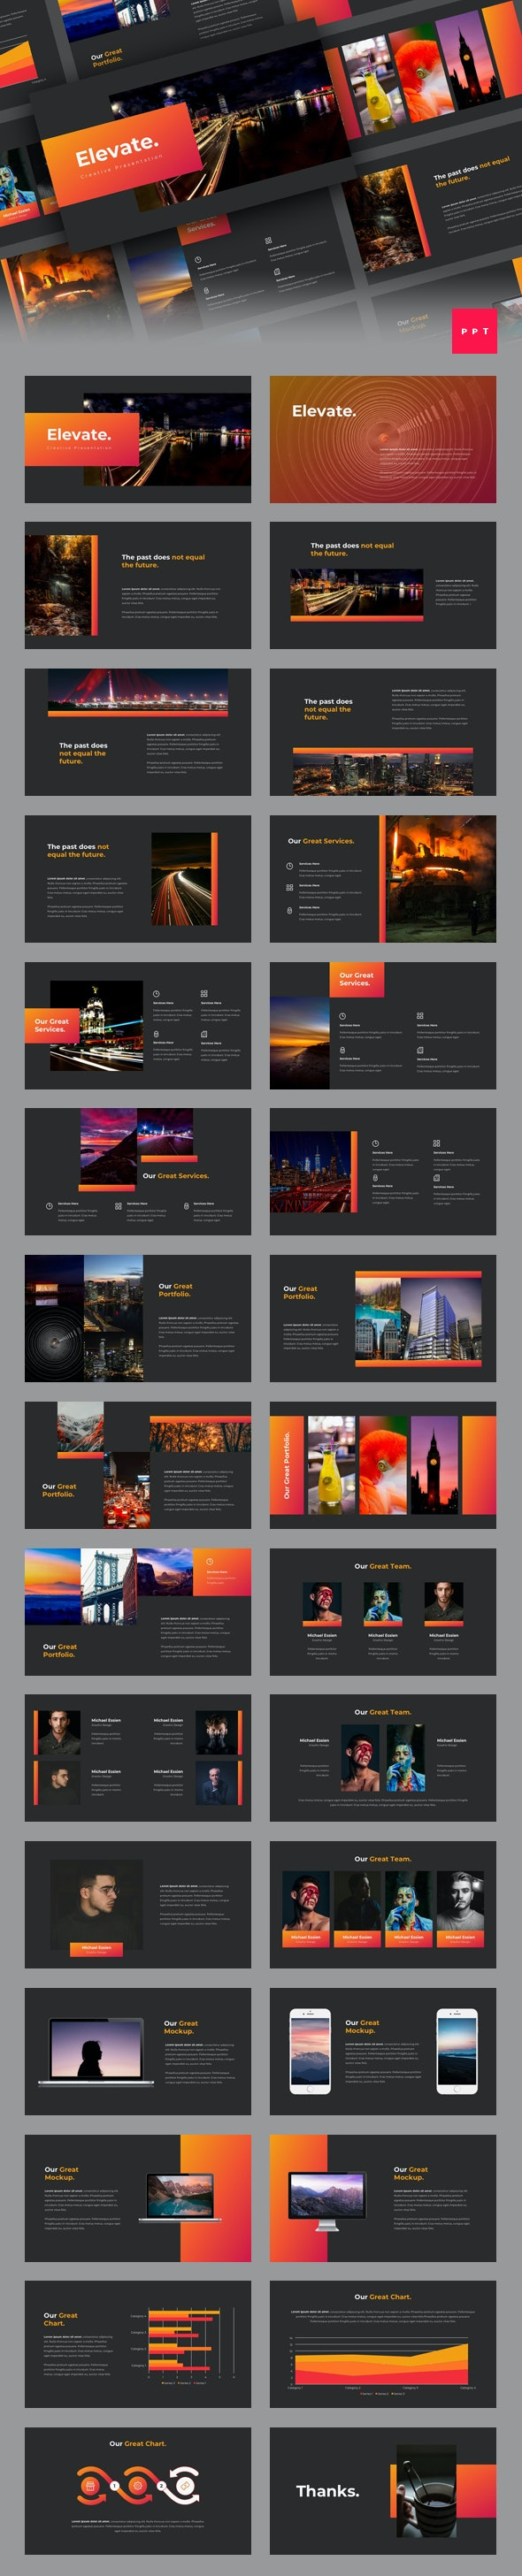 Elevate - Creative PowerPoint Template - Creative PowerPoint Templates